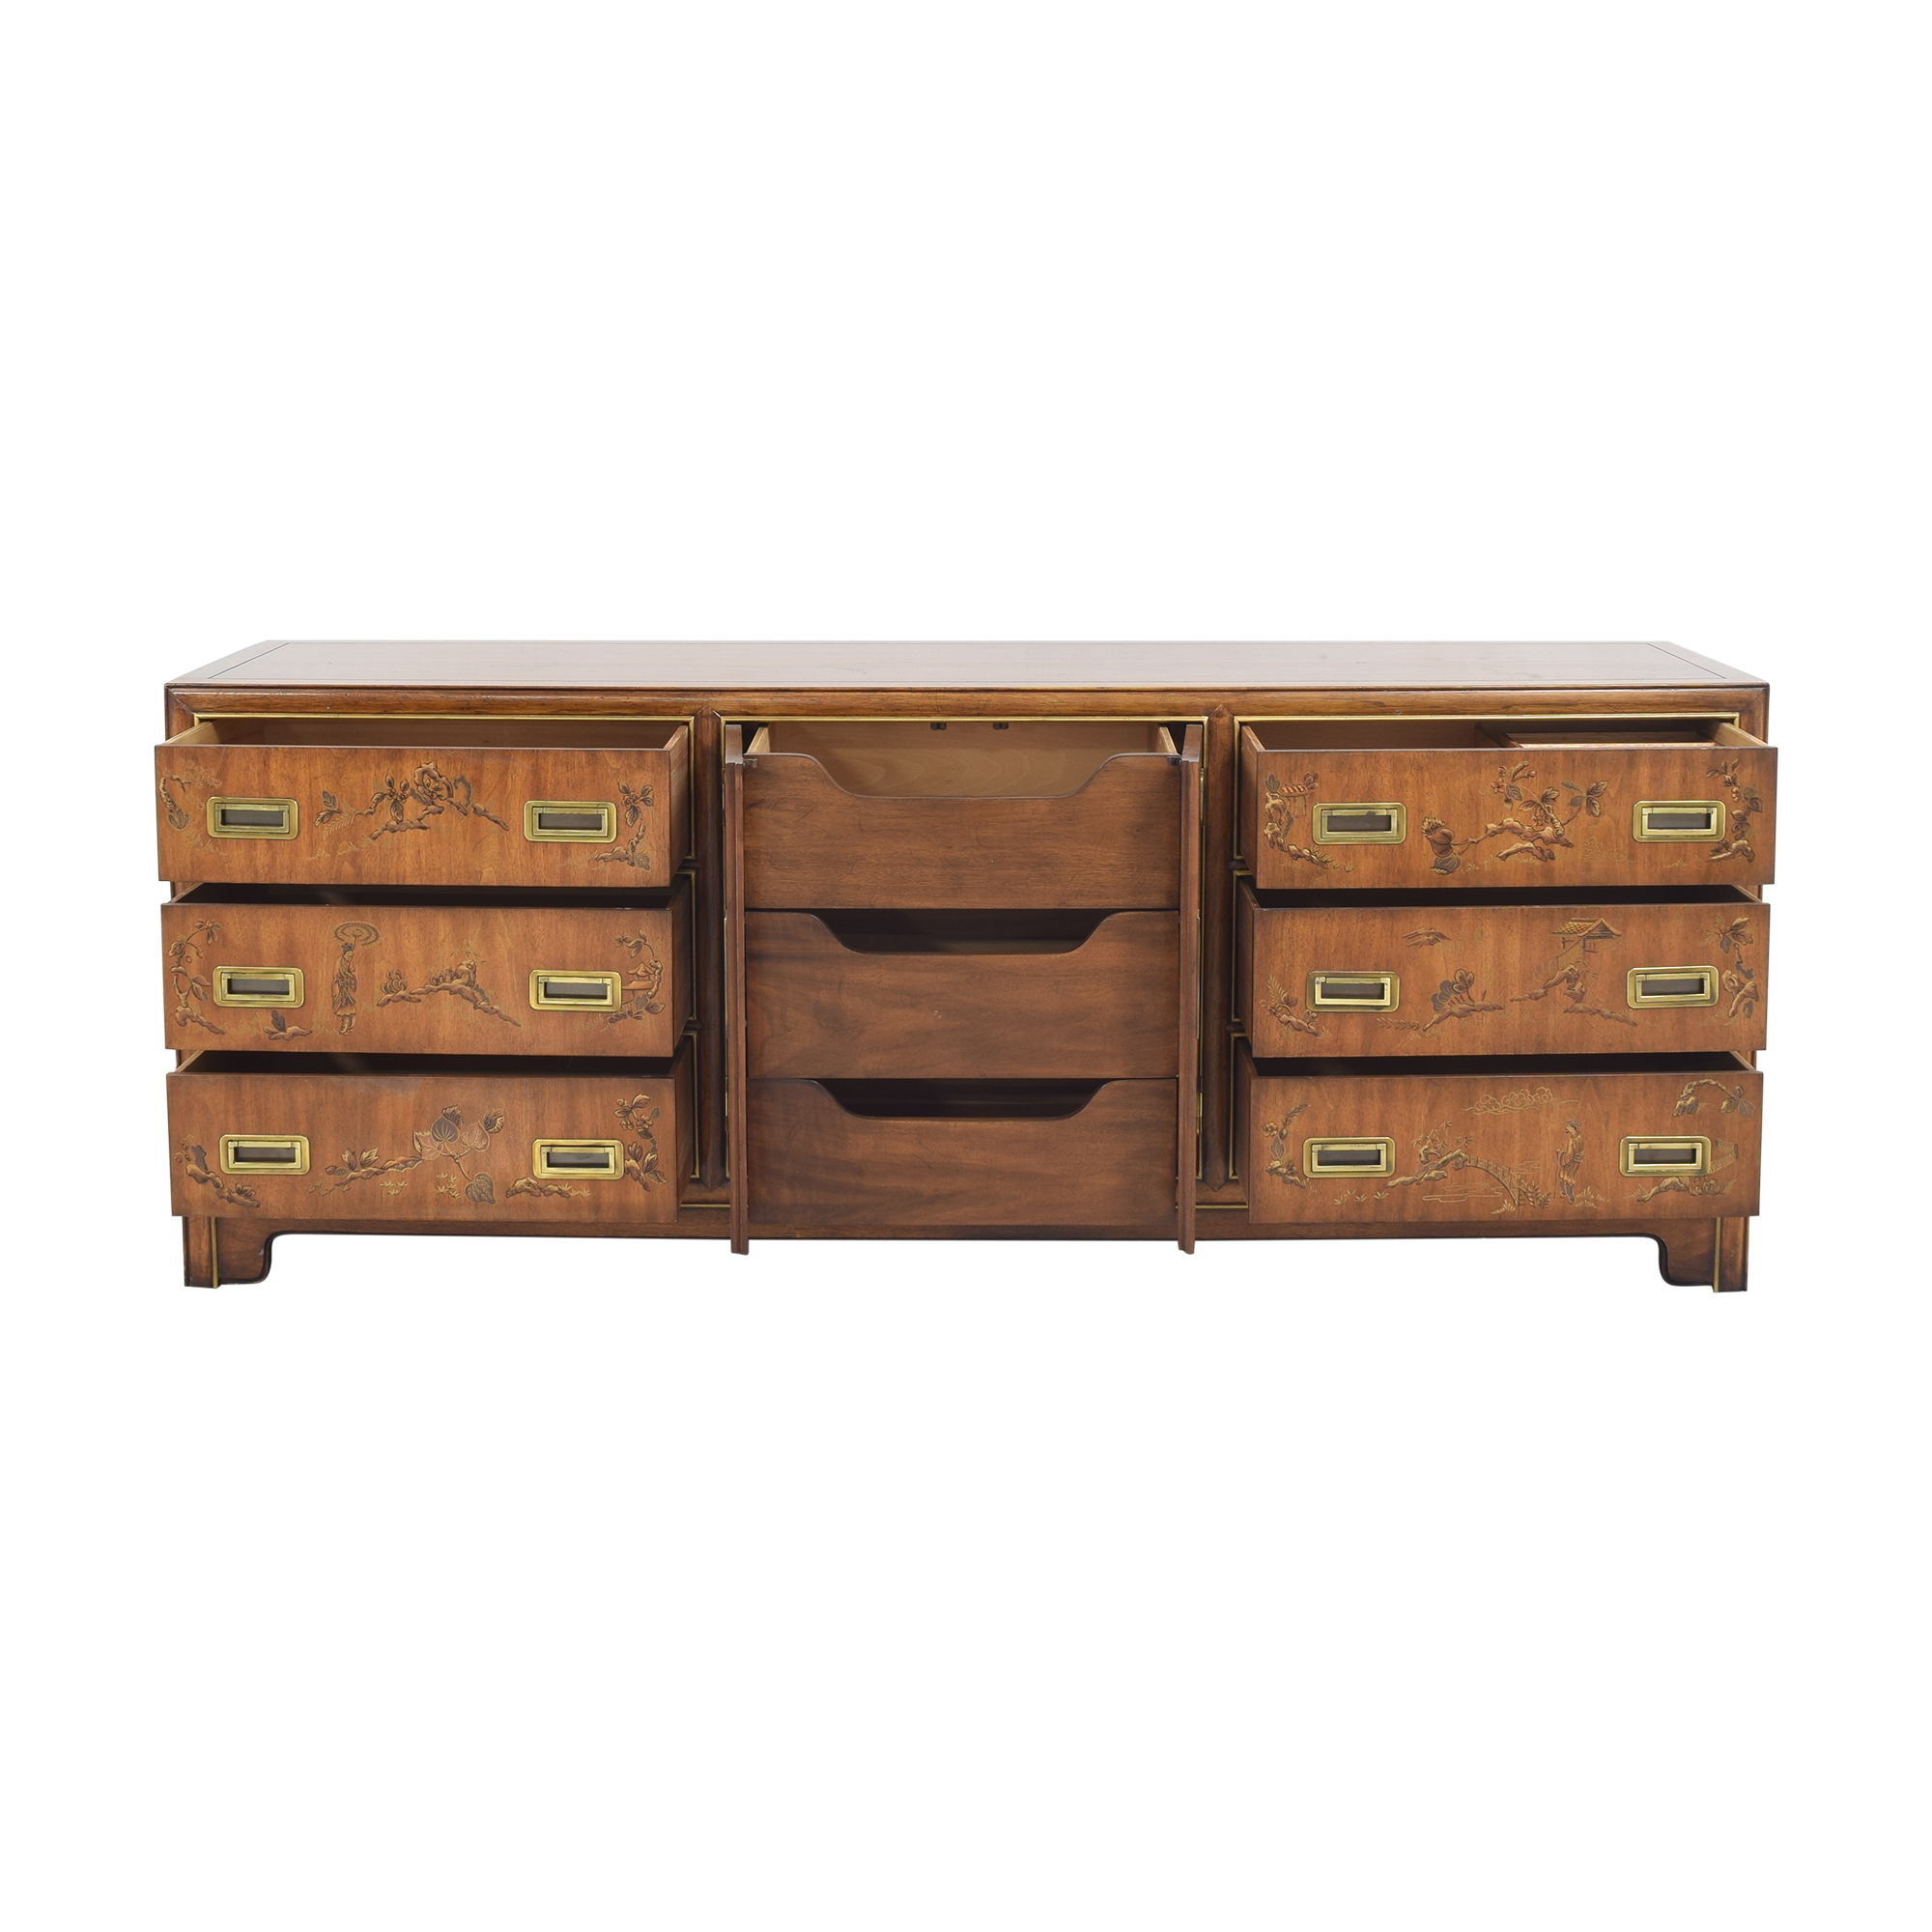 Drexel Heritage Drexel Heritage Dynasty Collection Campaign Dresser discount